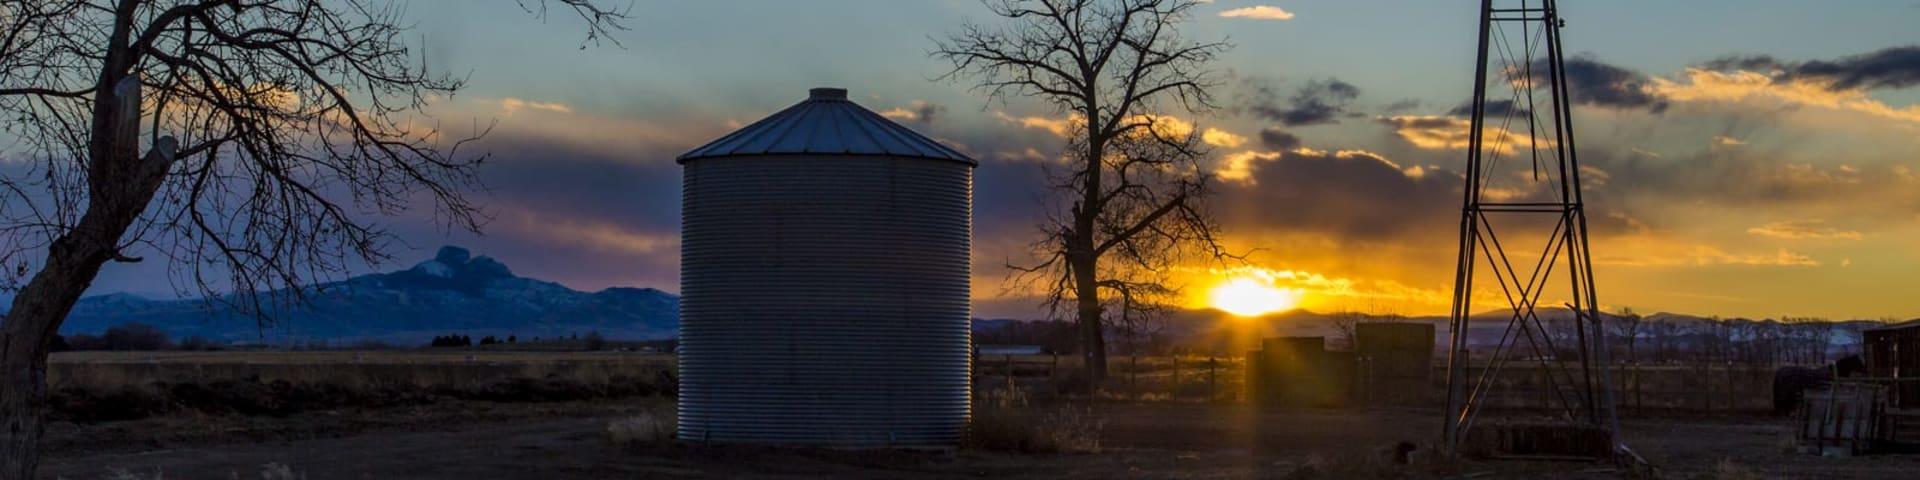 Image of a sunset over a farm